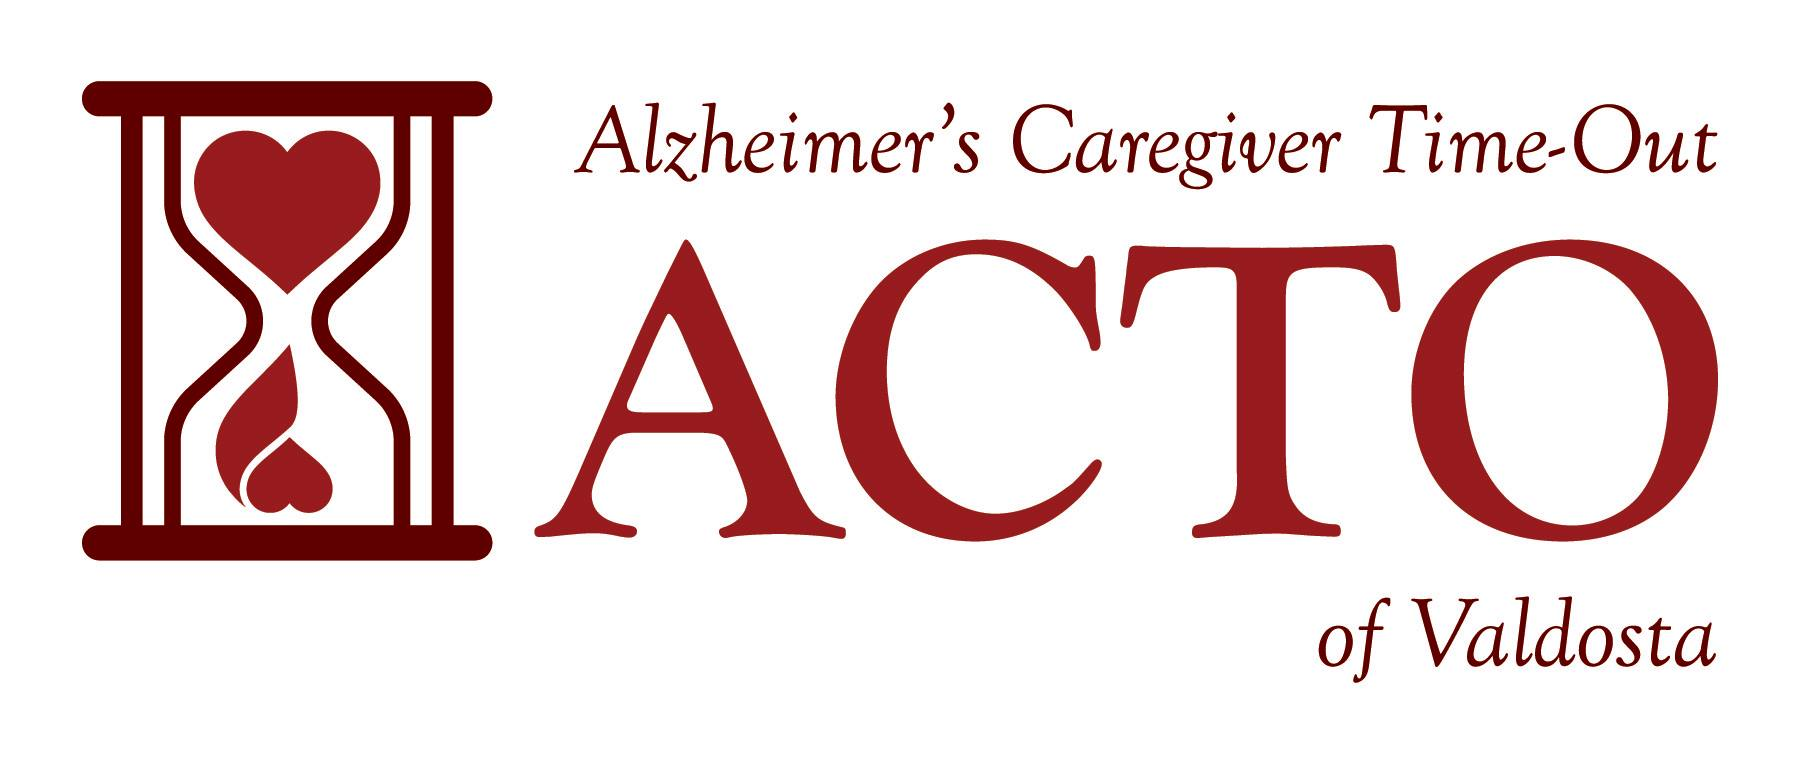 Alzheimer's-Caregivers-Time-Out